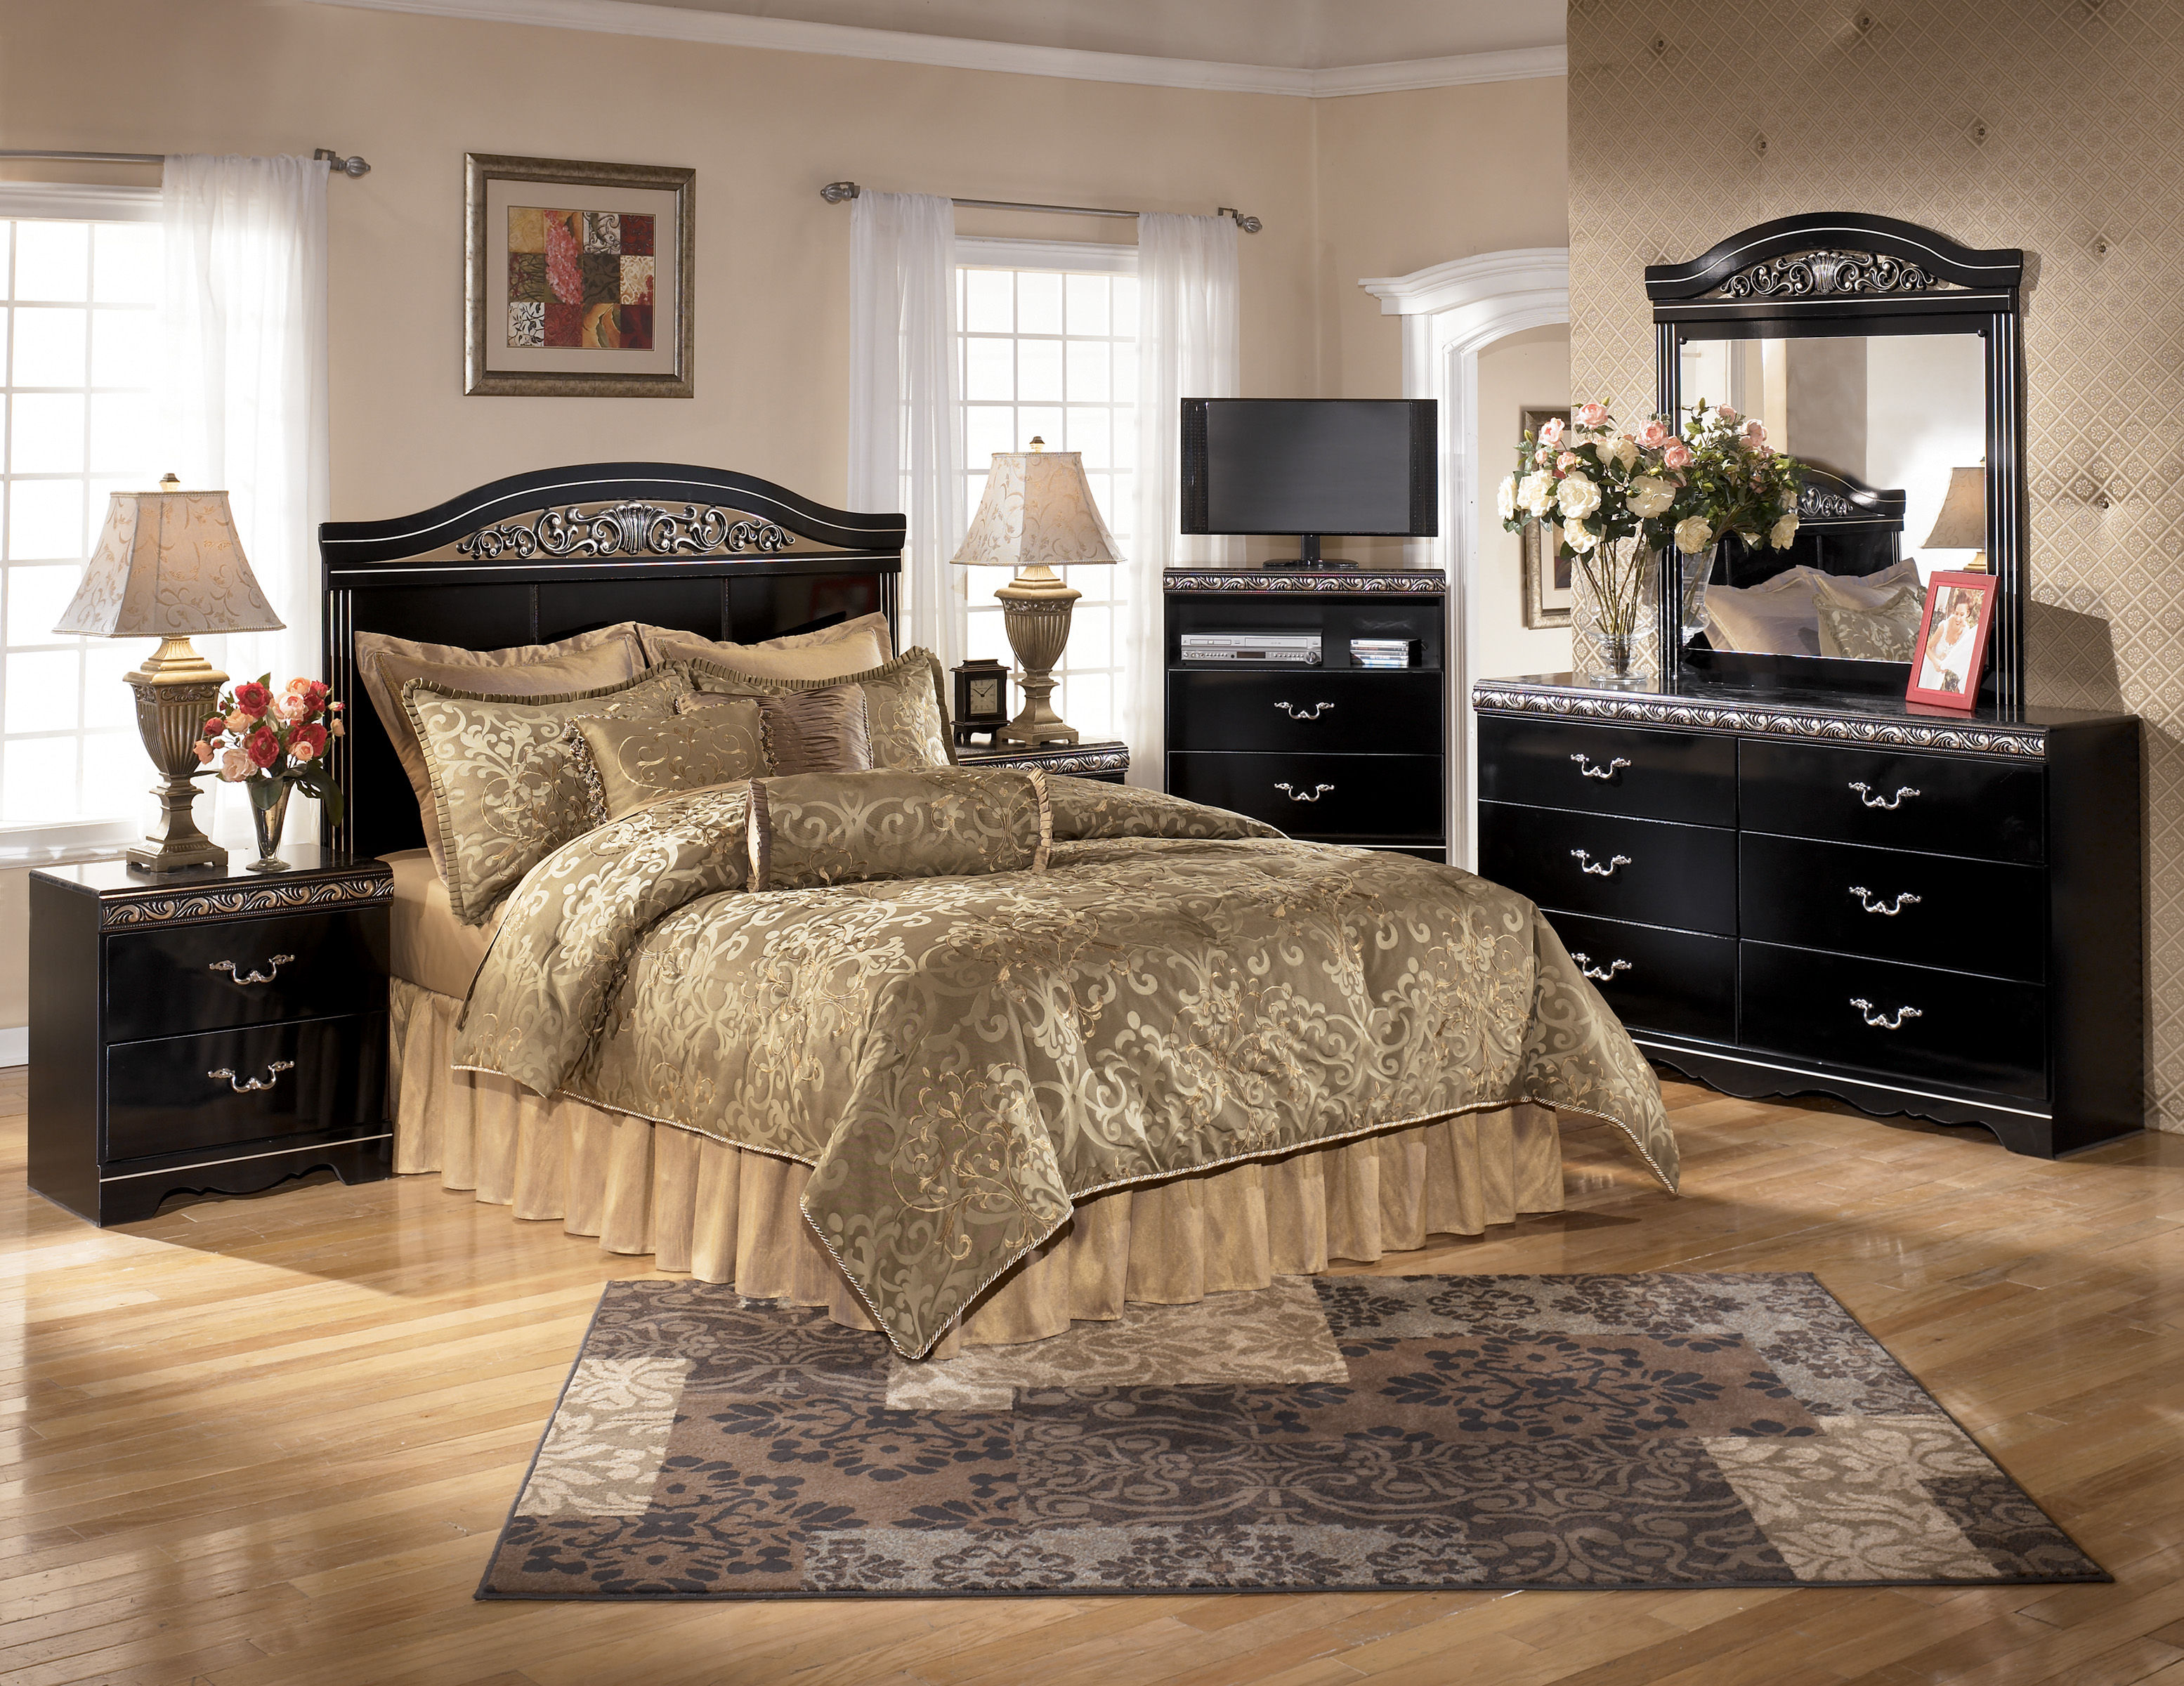 Ashley Furniture Constellations Black 2pc Bedroom Set With